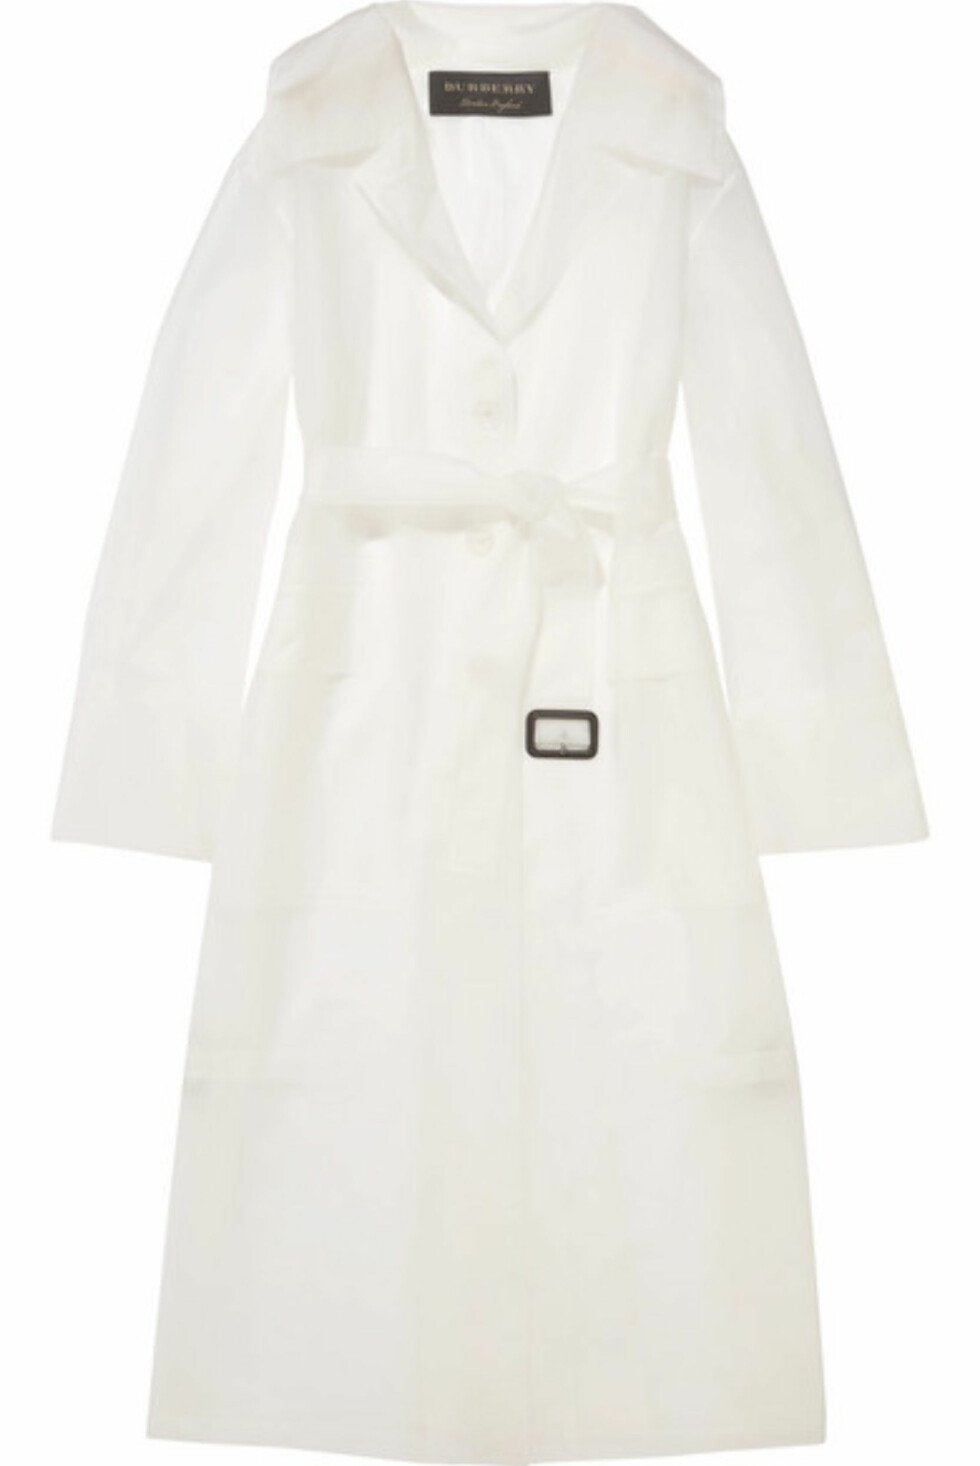 Kåpe fra Burberry |18000,-| https://www.net-a-porter.com/no/en/product/992870/Burberry/belted-rubberized-pu-trench-coat